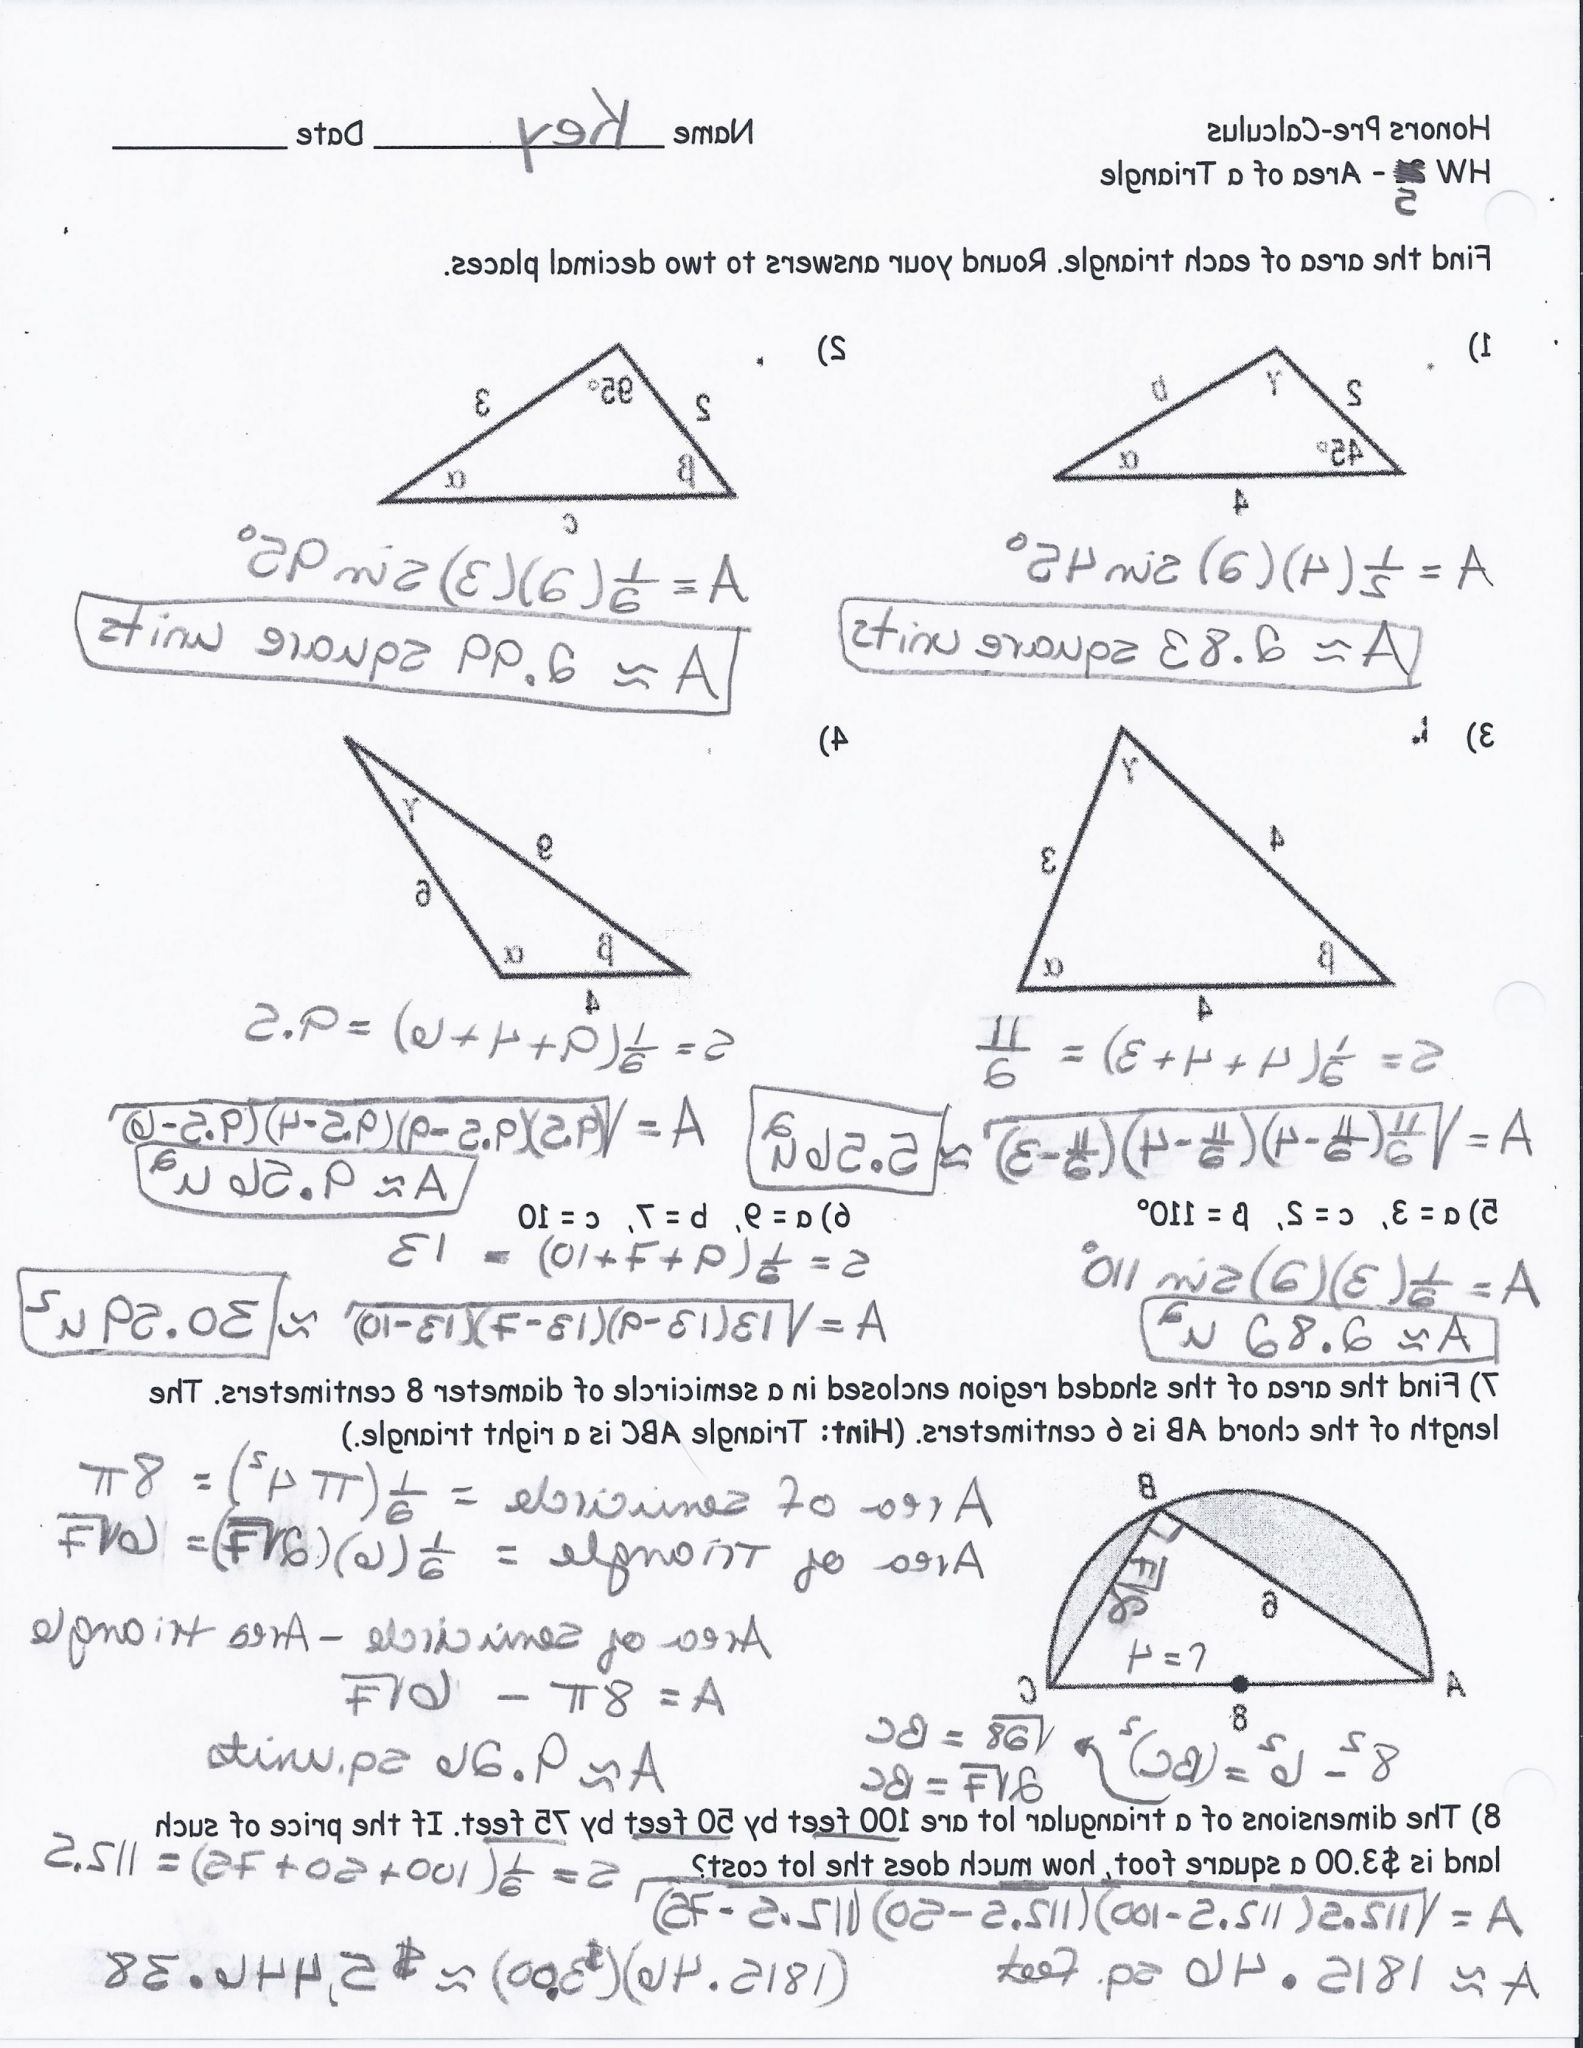 Proving Trigonometric Identities Worksheet With Answers